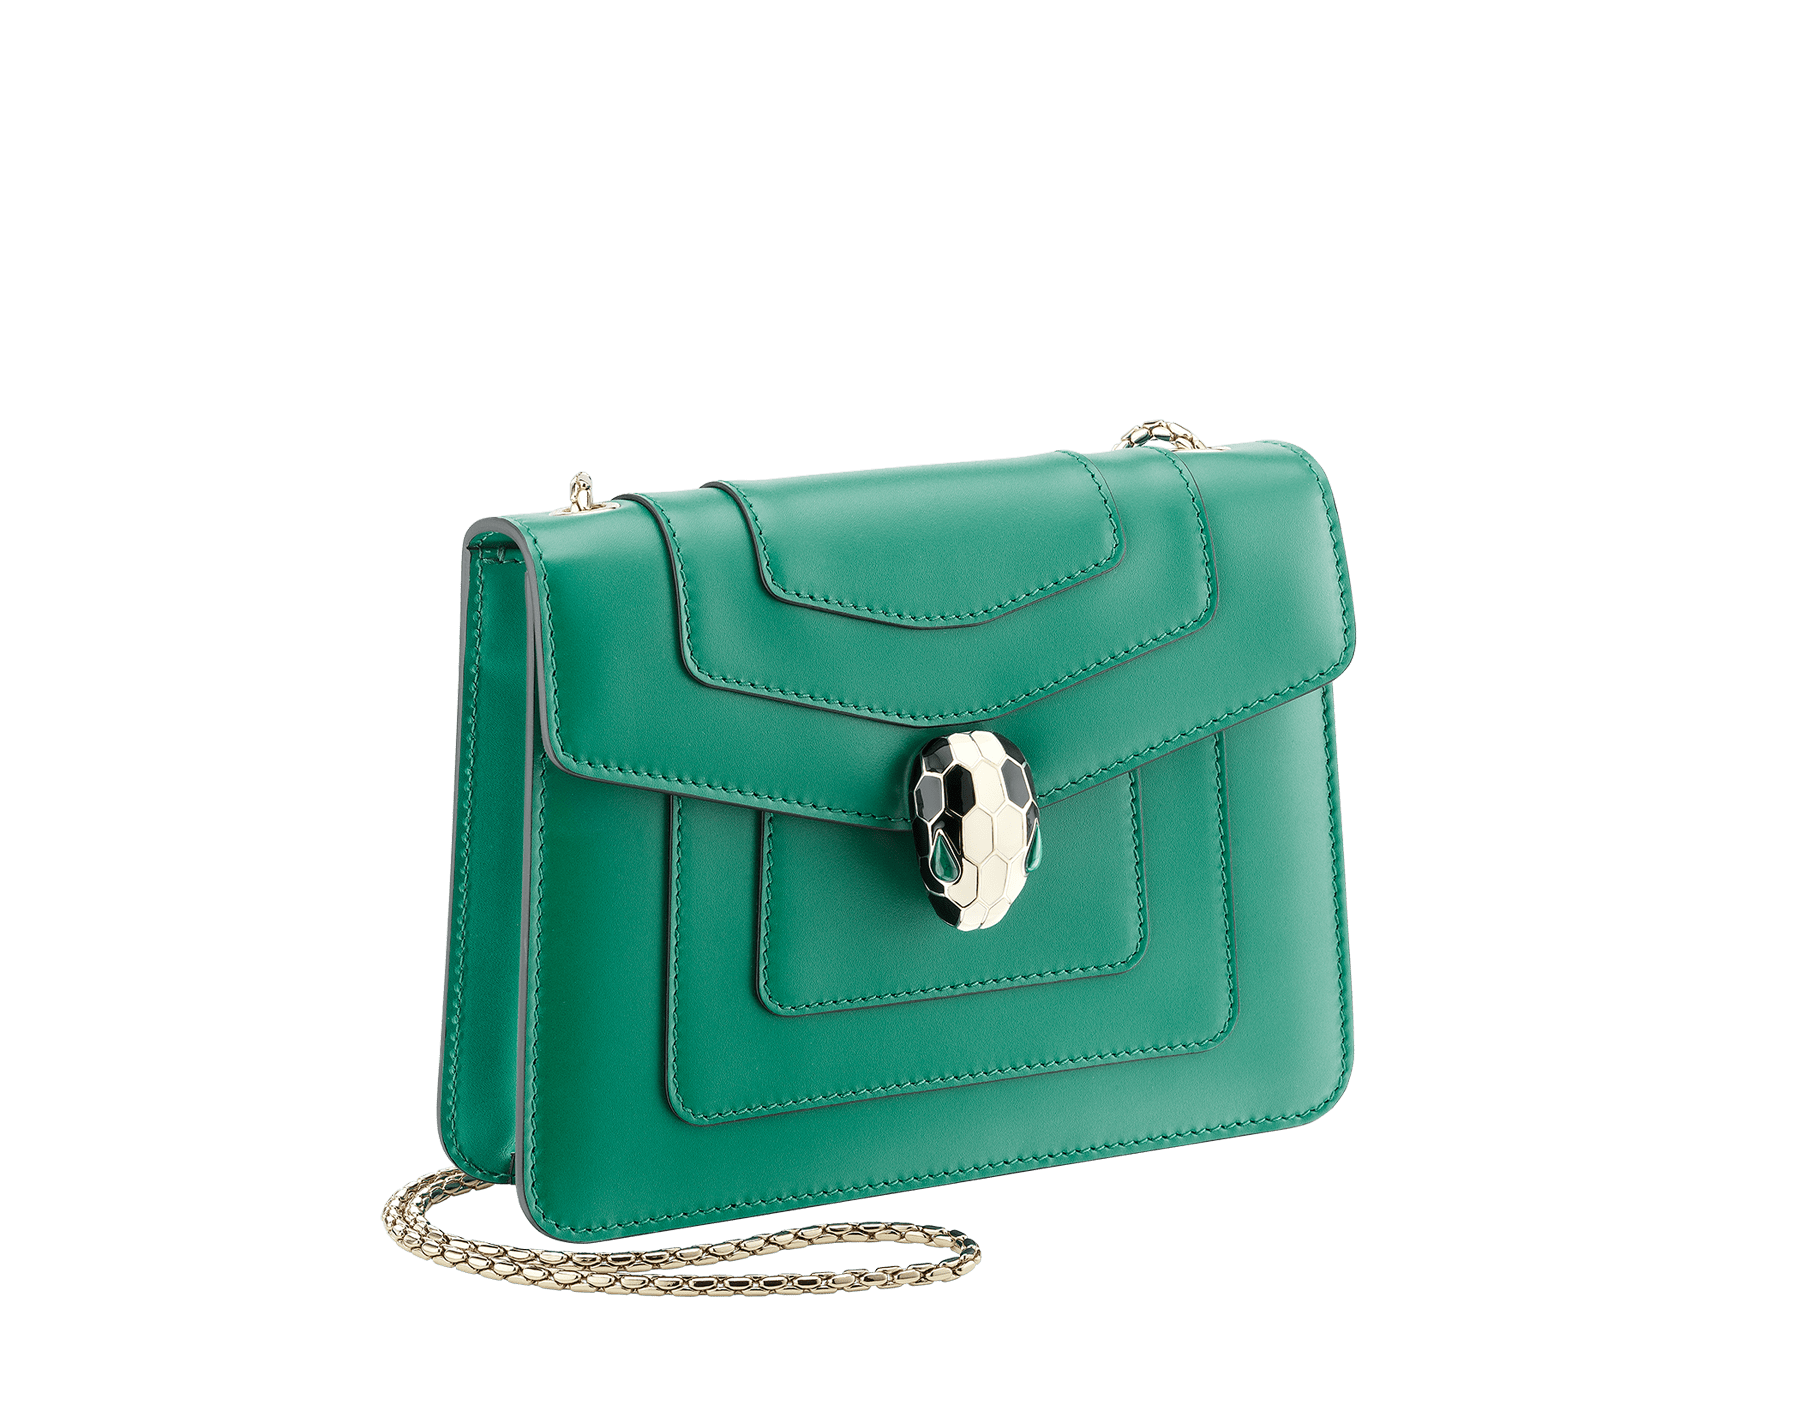 Shoulder bag Serpenti Forever in emerald green calf leather with brass light gold plated Serpenti head closure in black and white enamel with eyes in malachite. 422-CLa image 2